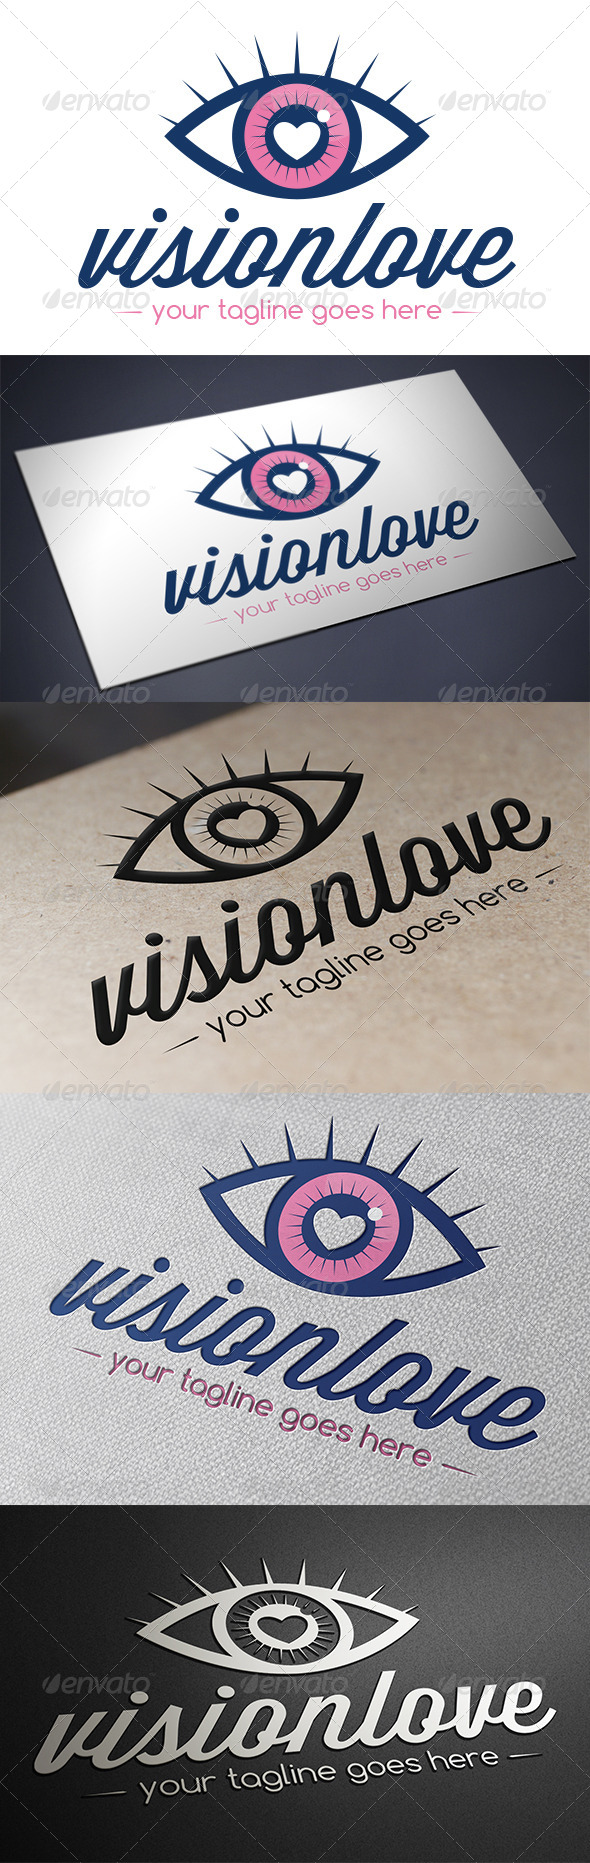 GraphicRiver Vision Love Logo Template 5592803